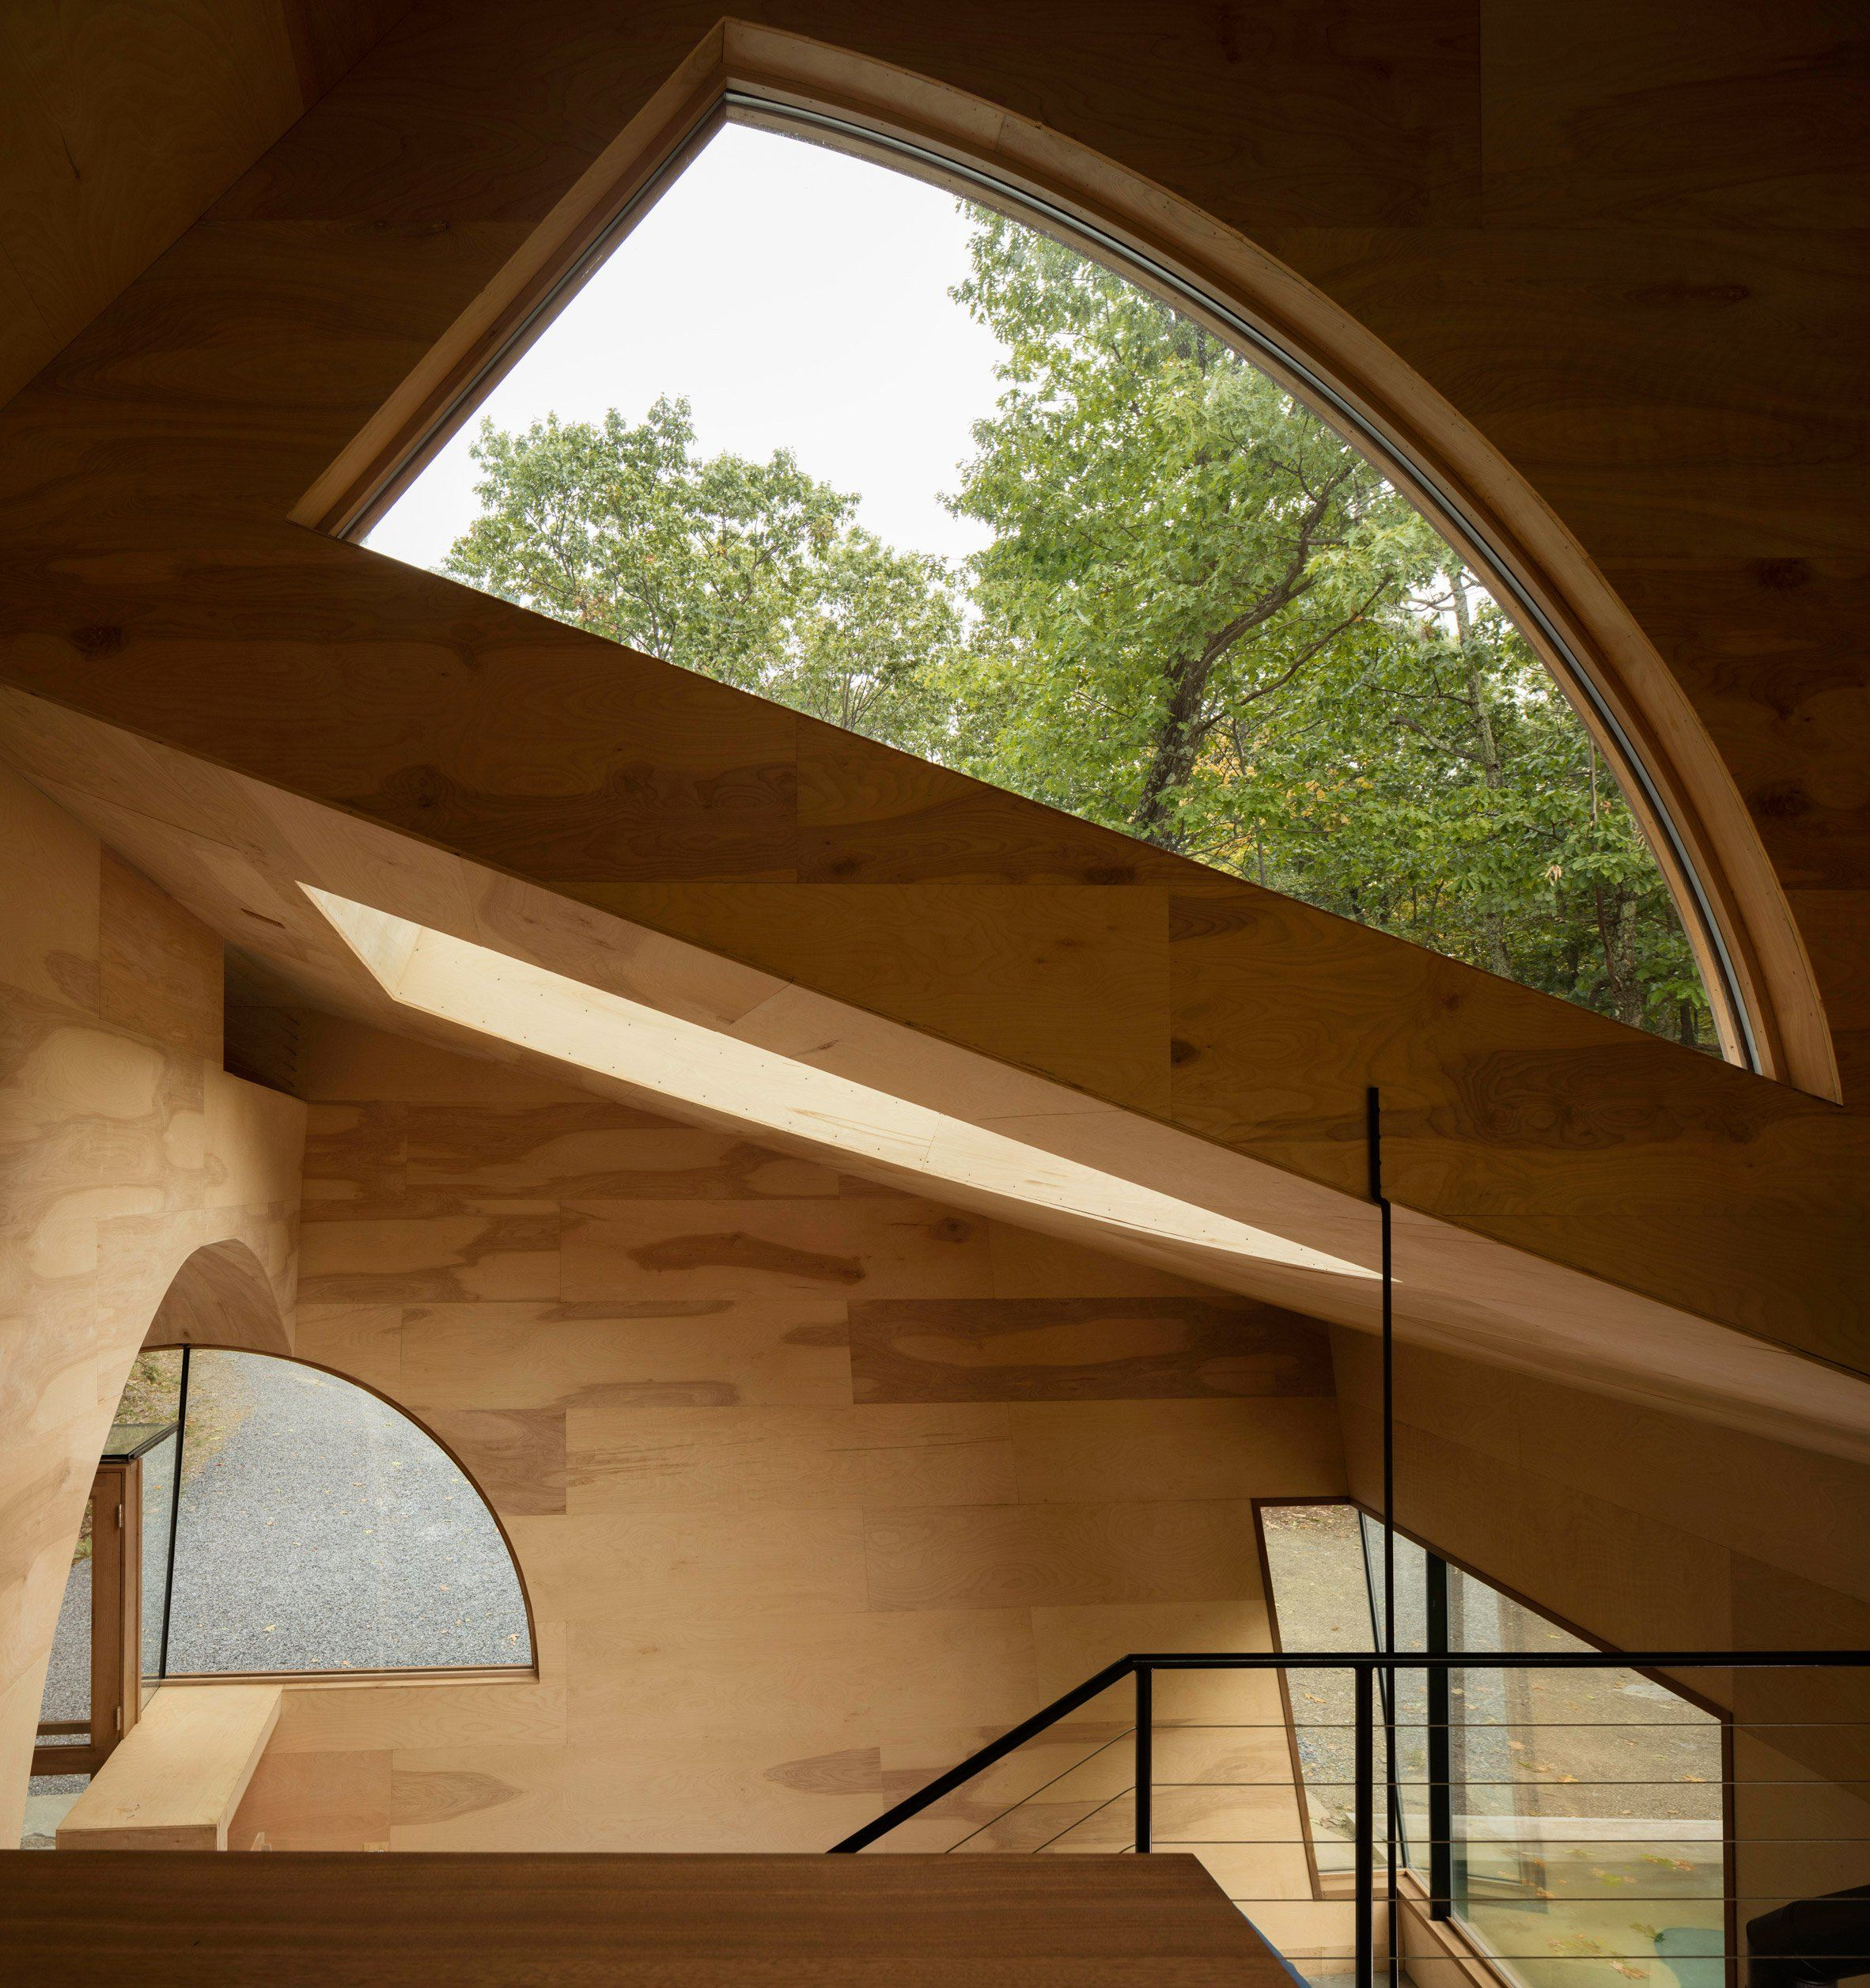 Steven Holls Upstate Ex of In House is an experiment in